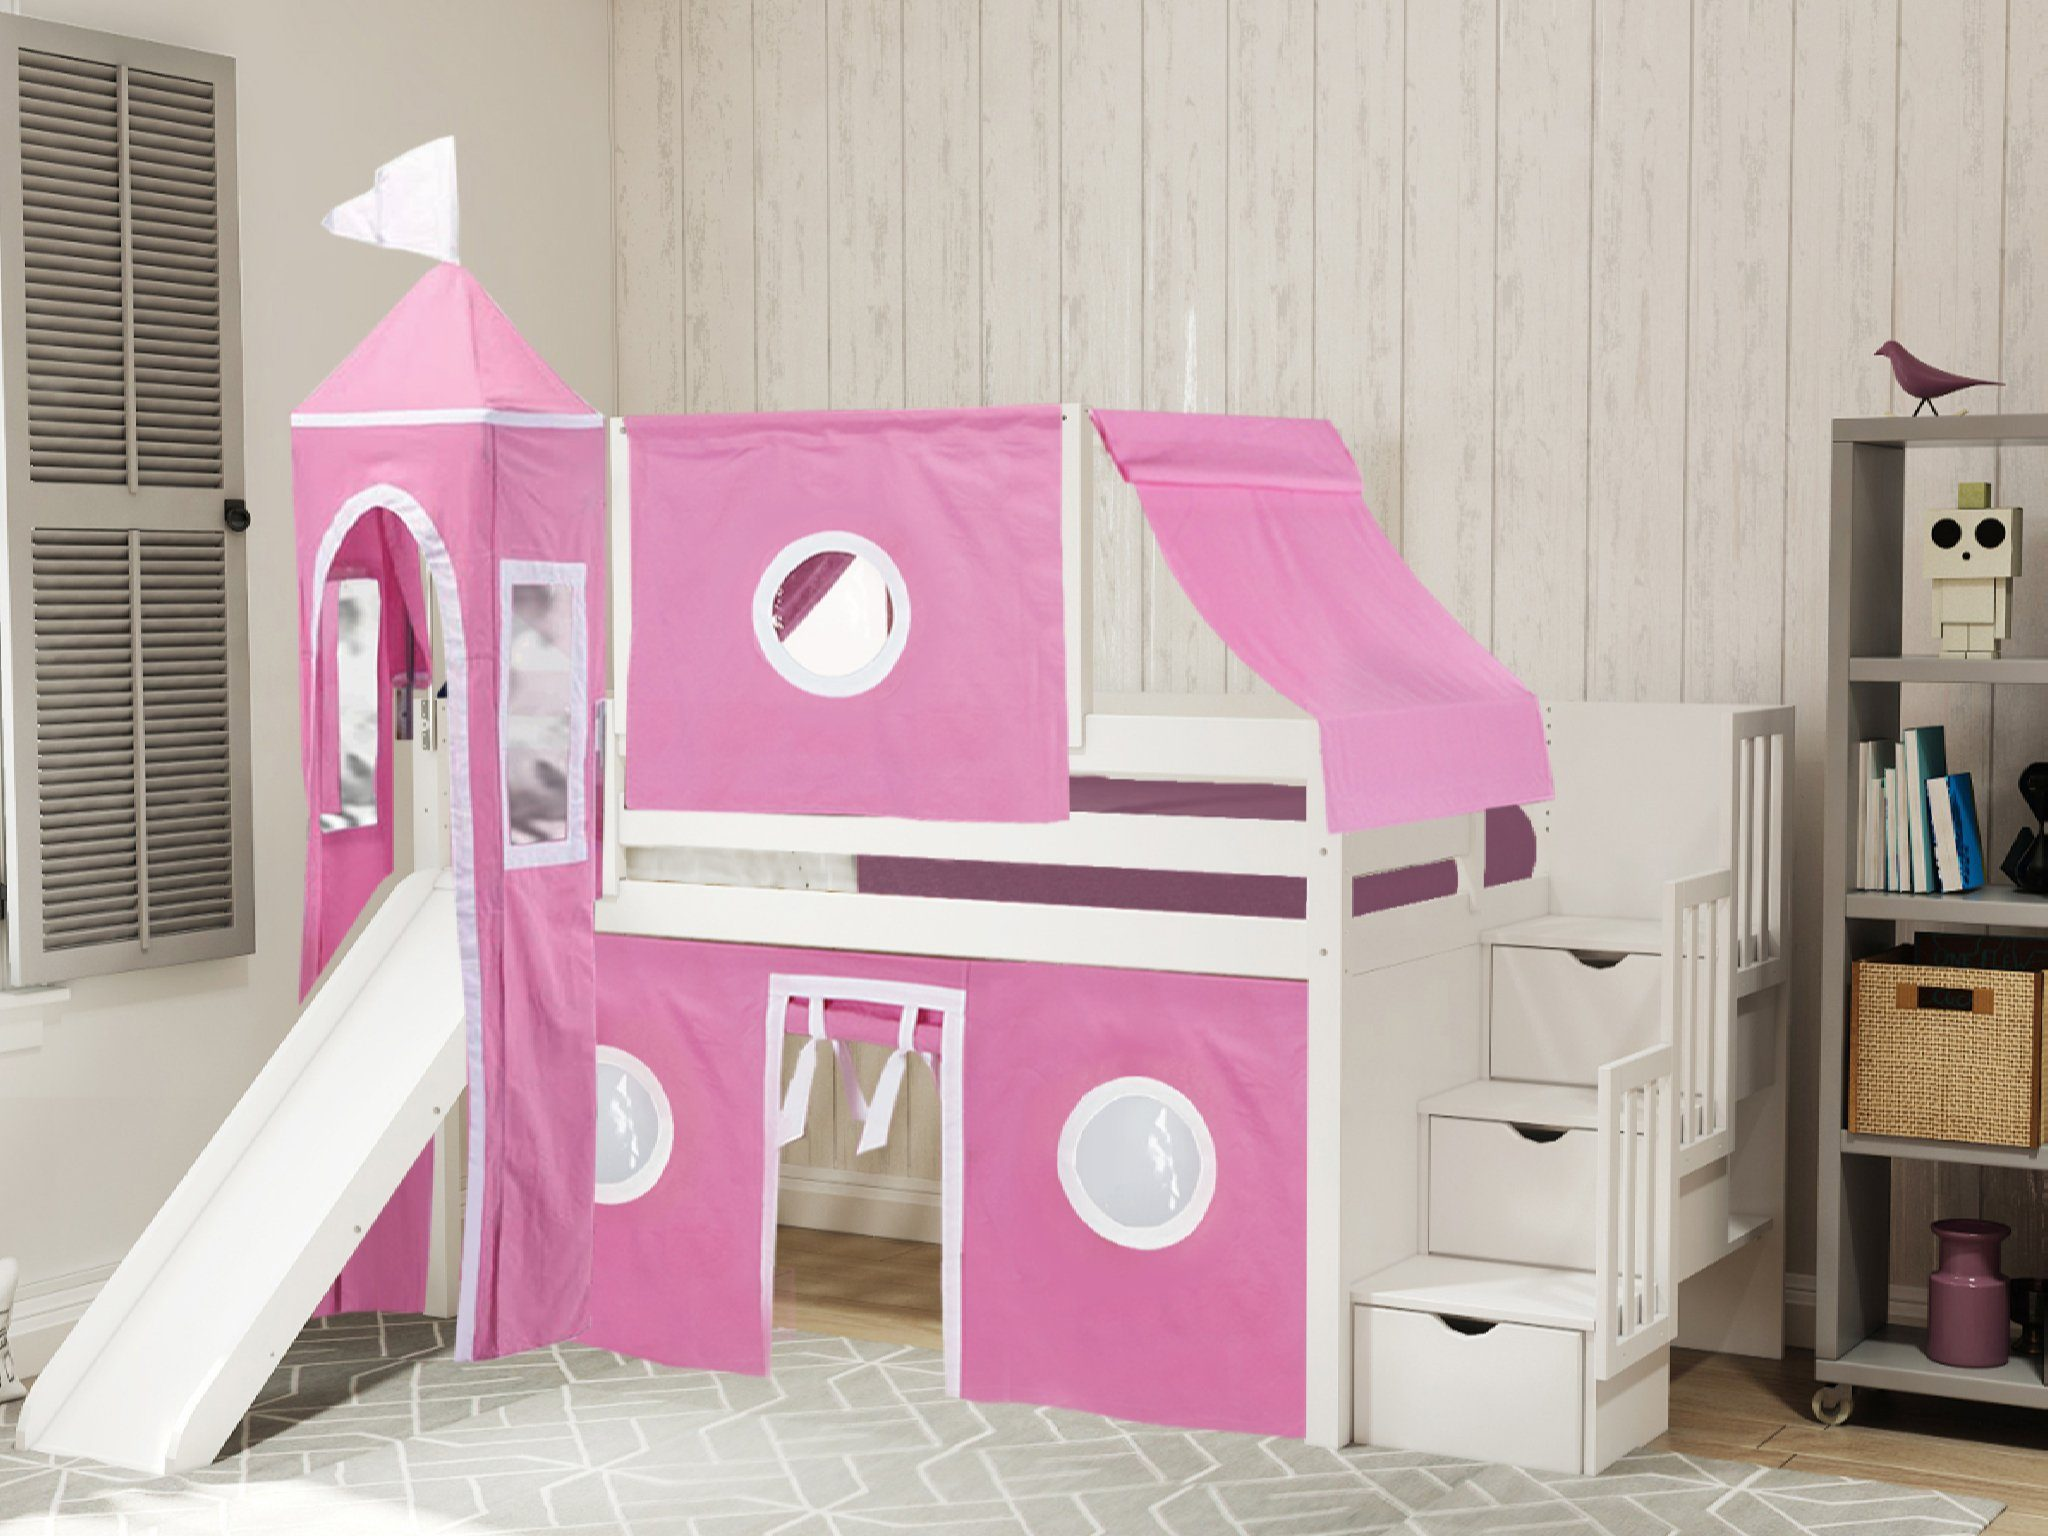 Jackpot Princess Low Loft Stairway Bed With Slide Pink White Tent And Tower Loft Bed Twin White Walmart Com Walmart Com